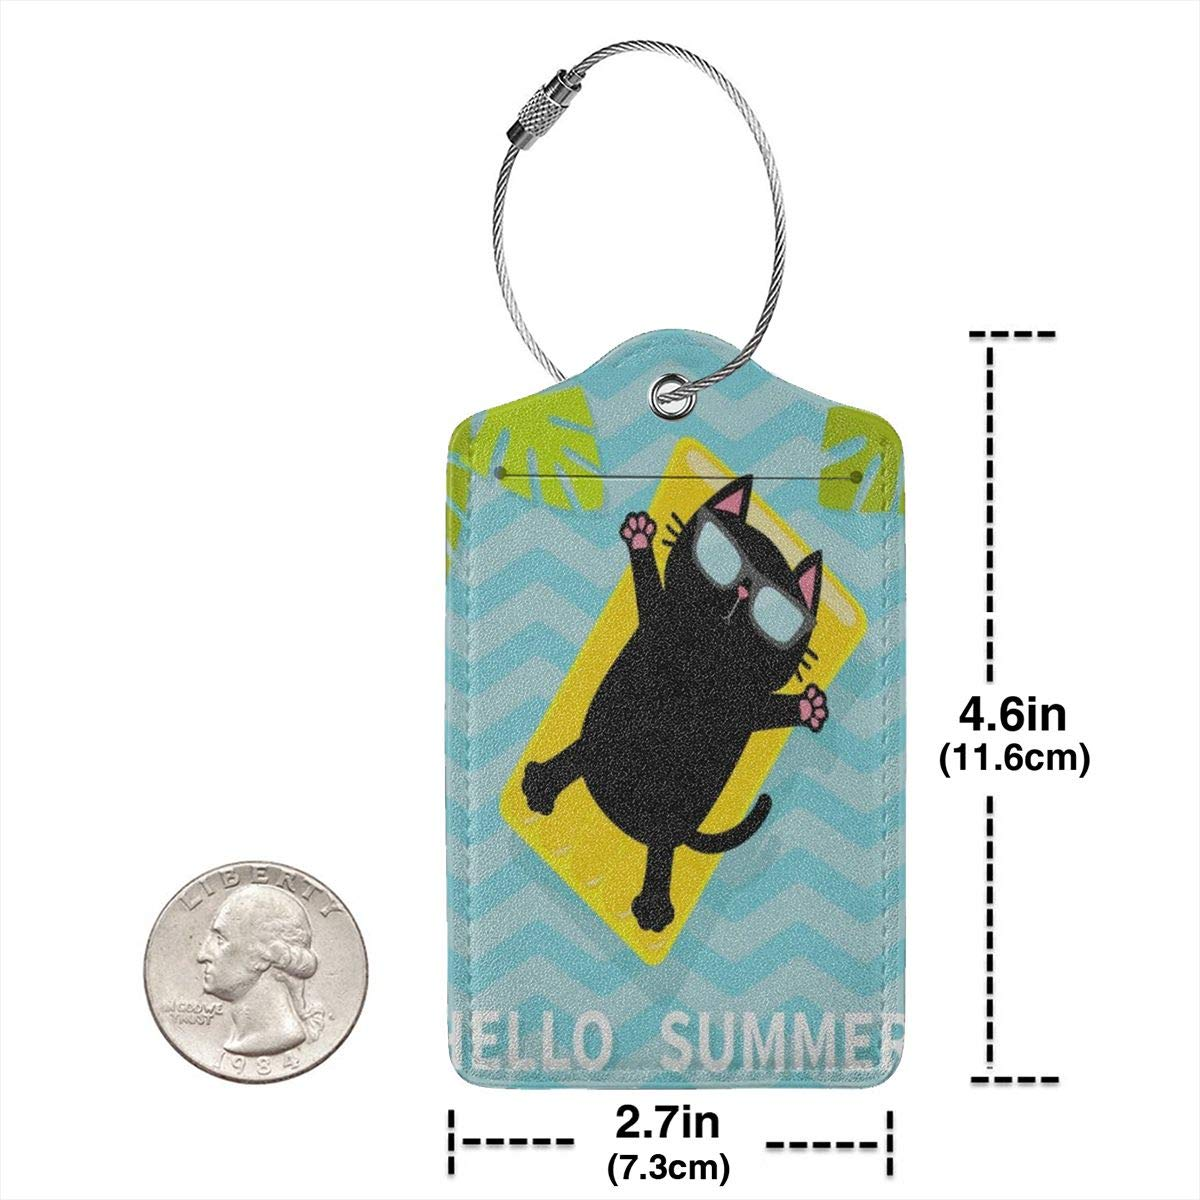 Hello Summer Funny Cat Floating On Pool Water Leather Luggage Tags Personalized Travel Accessories With Privacy Flap